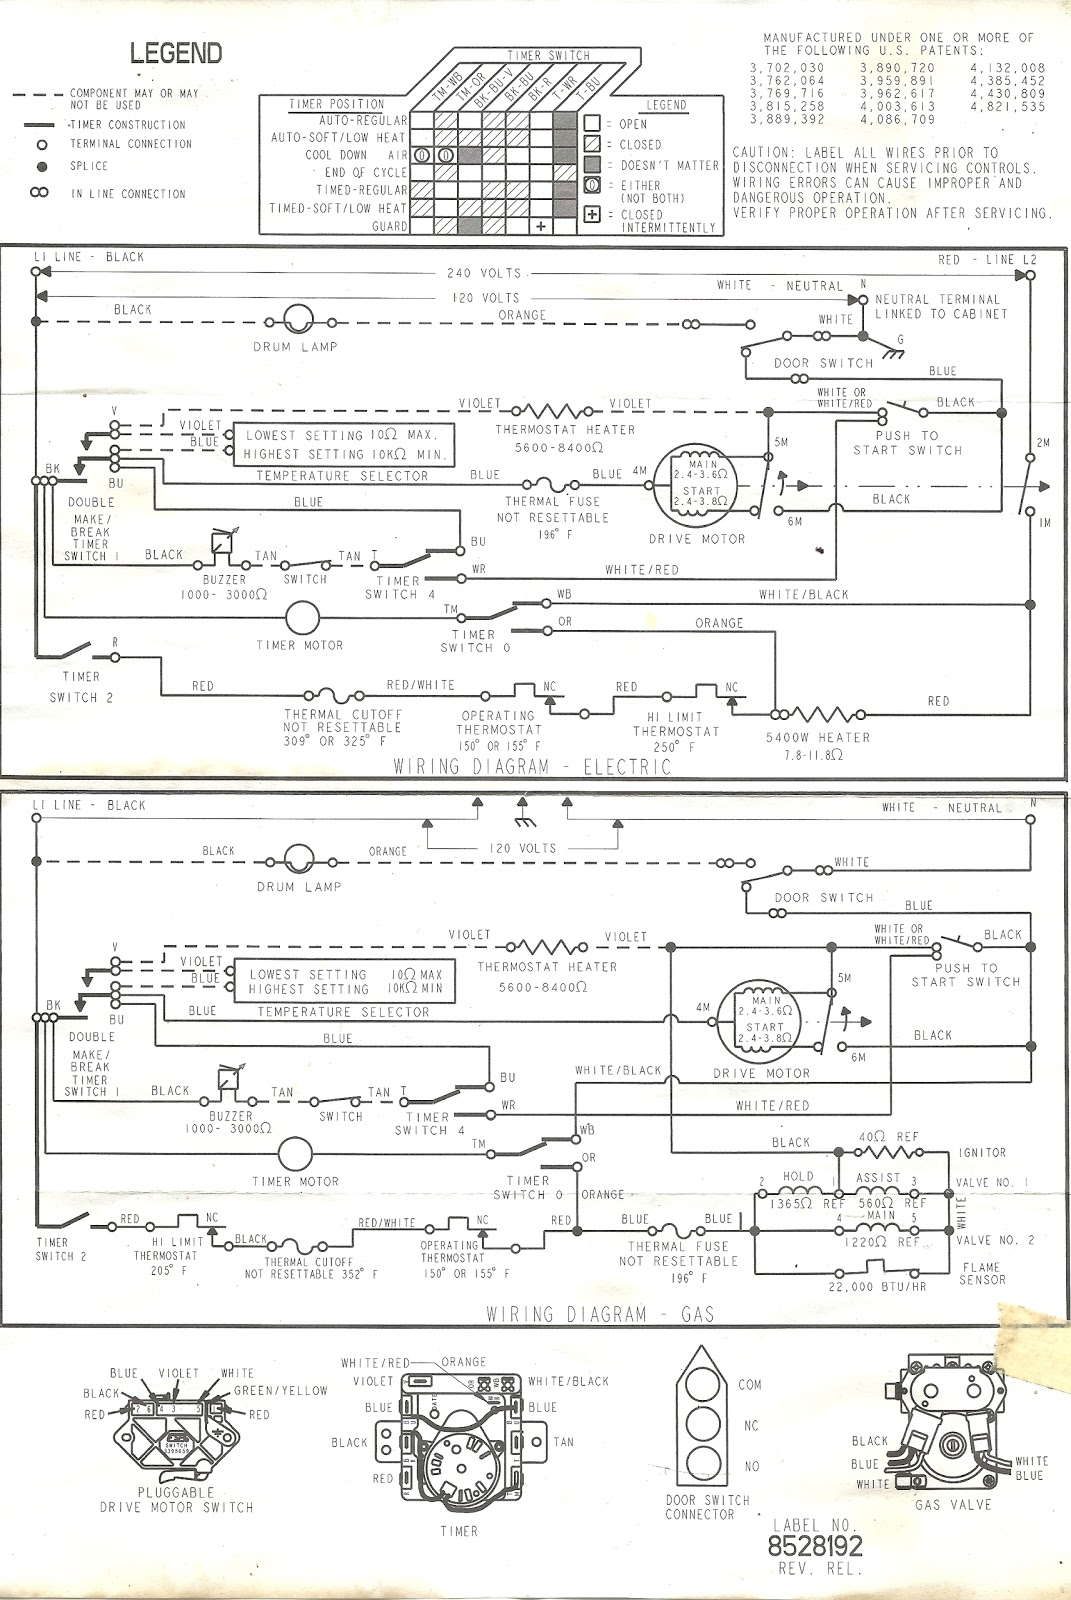 Admiral Washer Wiring Diagram - L31 Engine Diagram -  ad6e6.sehidup.jeanjaures37.fr | Admiral Washer Wiring Diagram |  | Wiring Diagram Resource